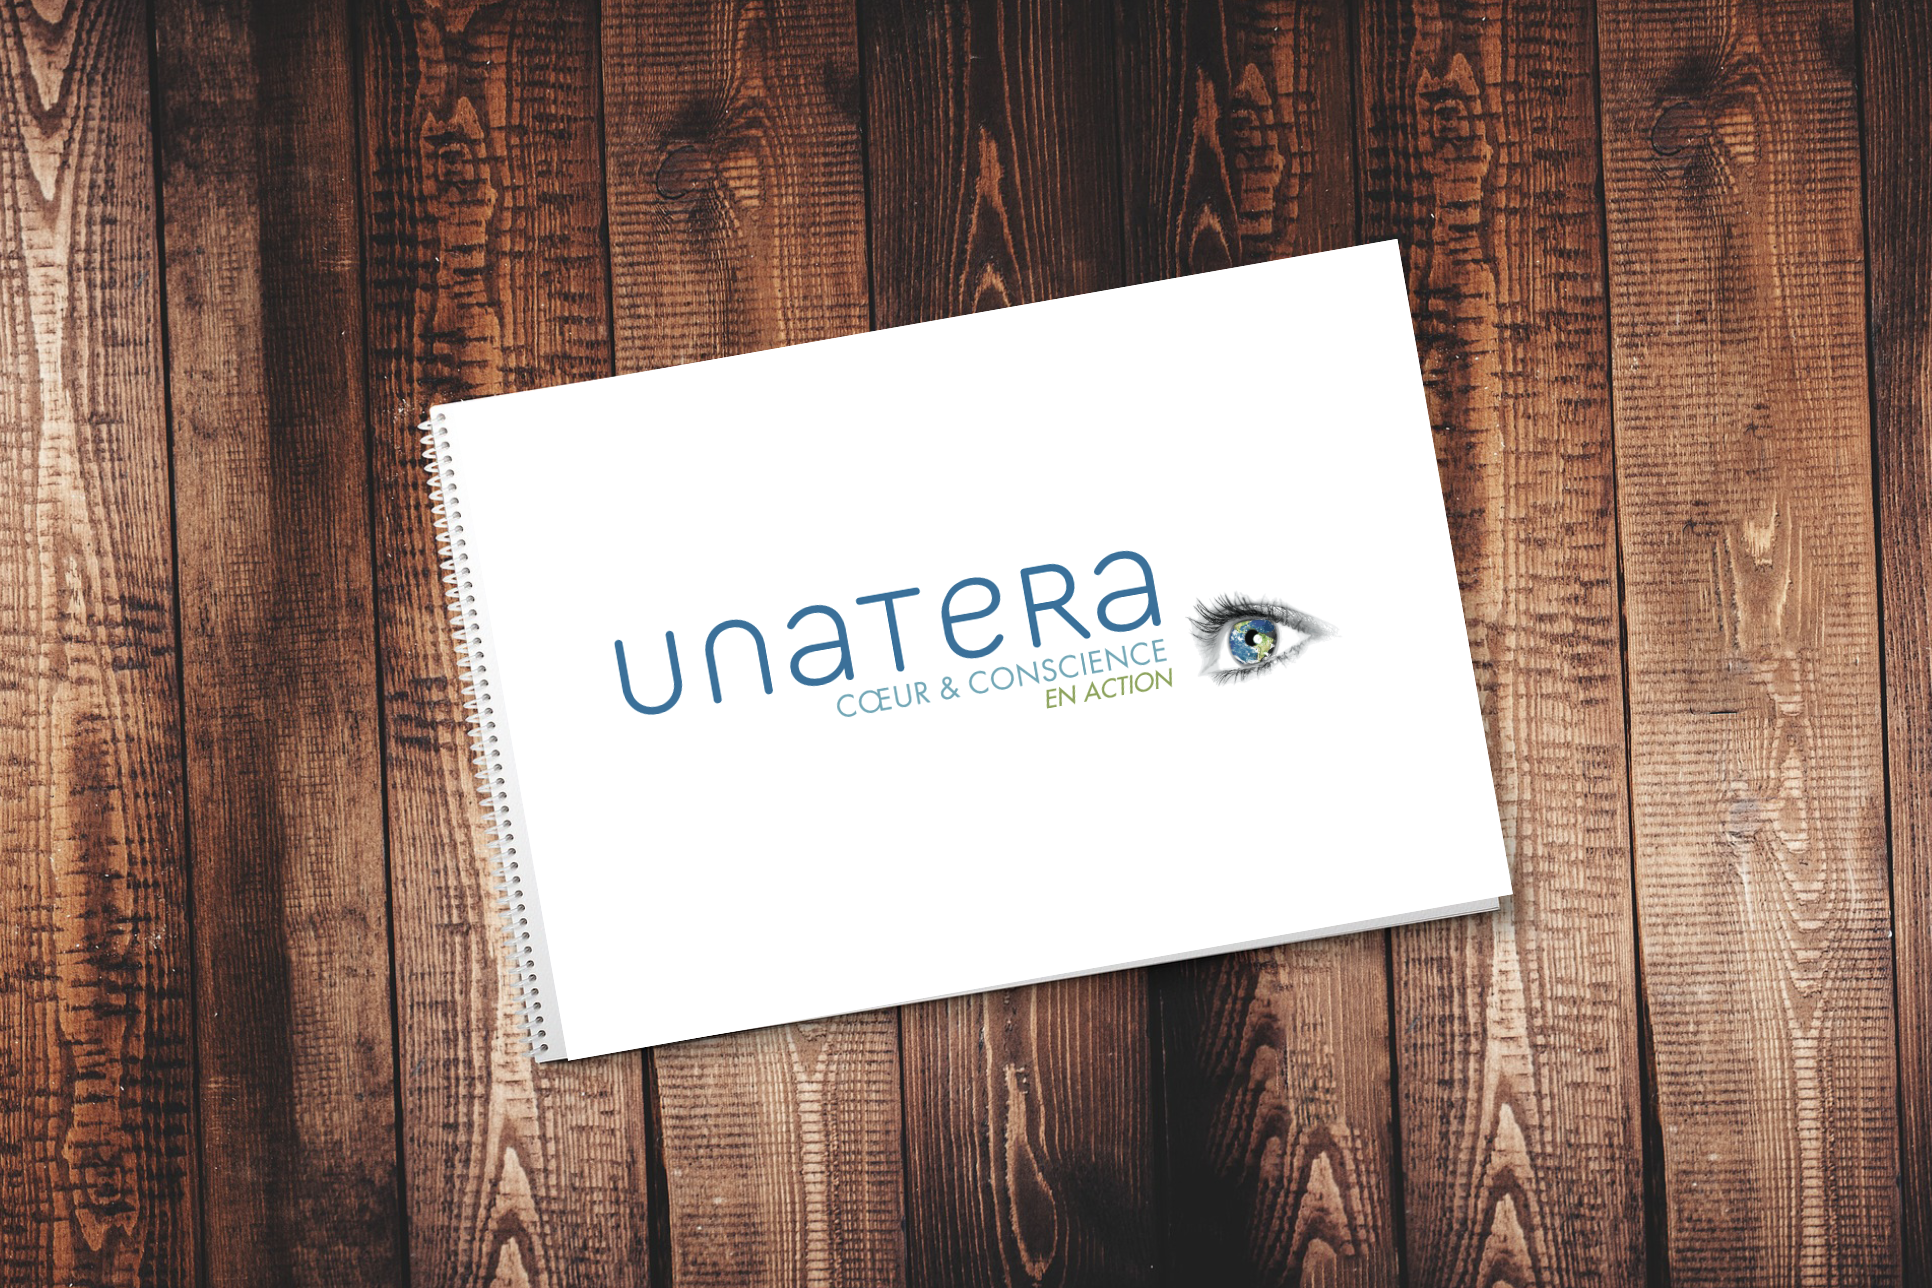 inspir_communication_logo_unatera